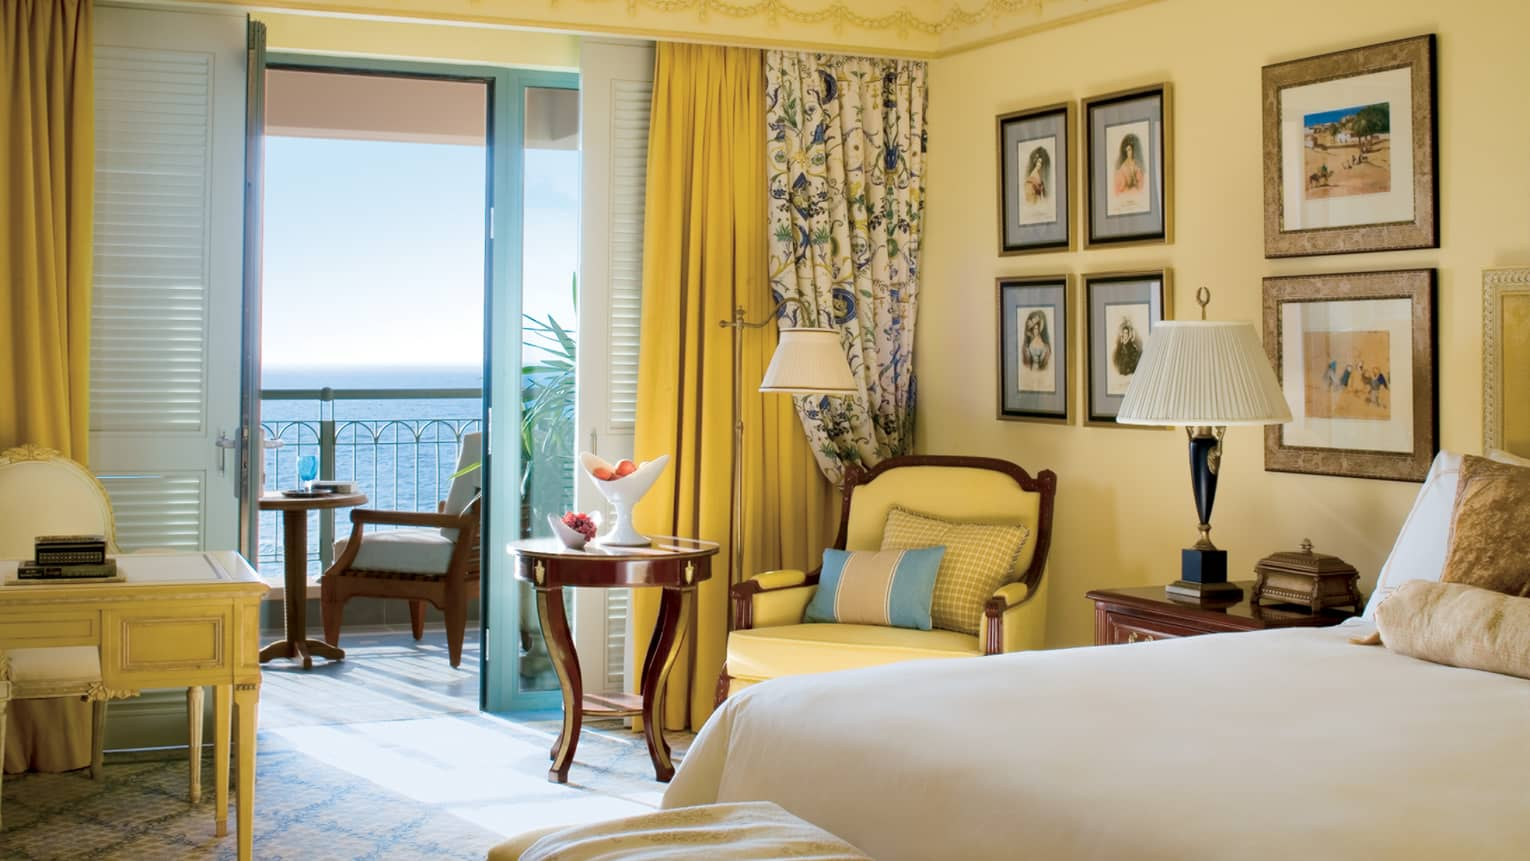 Sea-View Room with warm yellow walls, decor and floral accents, open patio door with Mediterranean Sea view